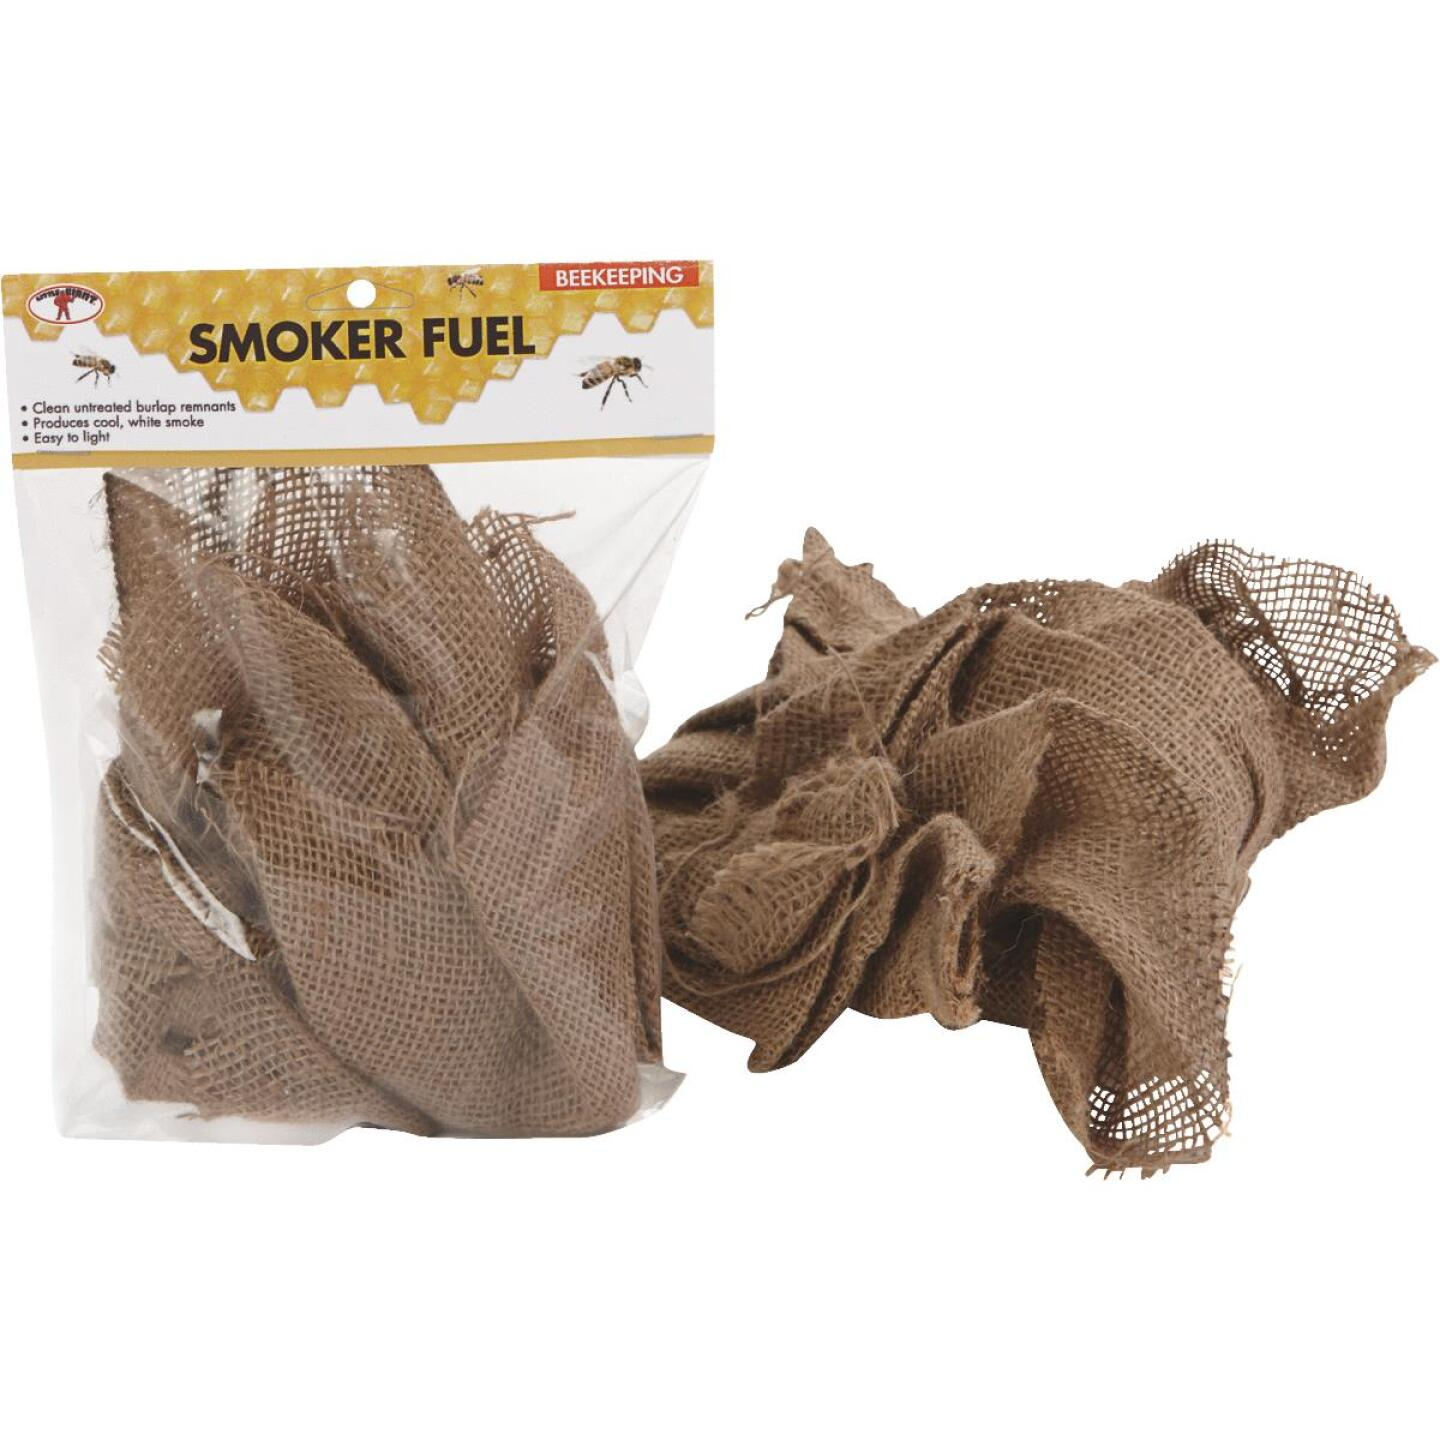 Little Giant 6.75 In. W. x 1.5 In. H. x 9.5 In. L. Burlap Smoker Fuel Beehive Tool Image 1